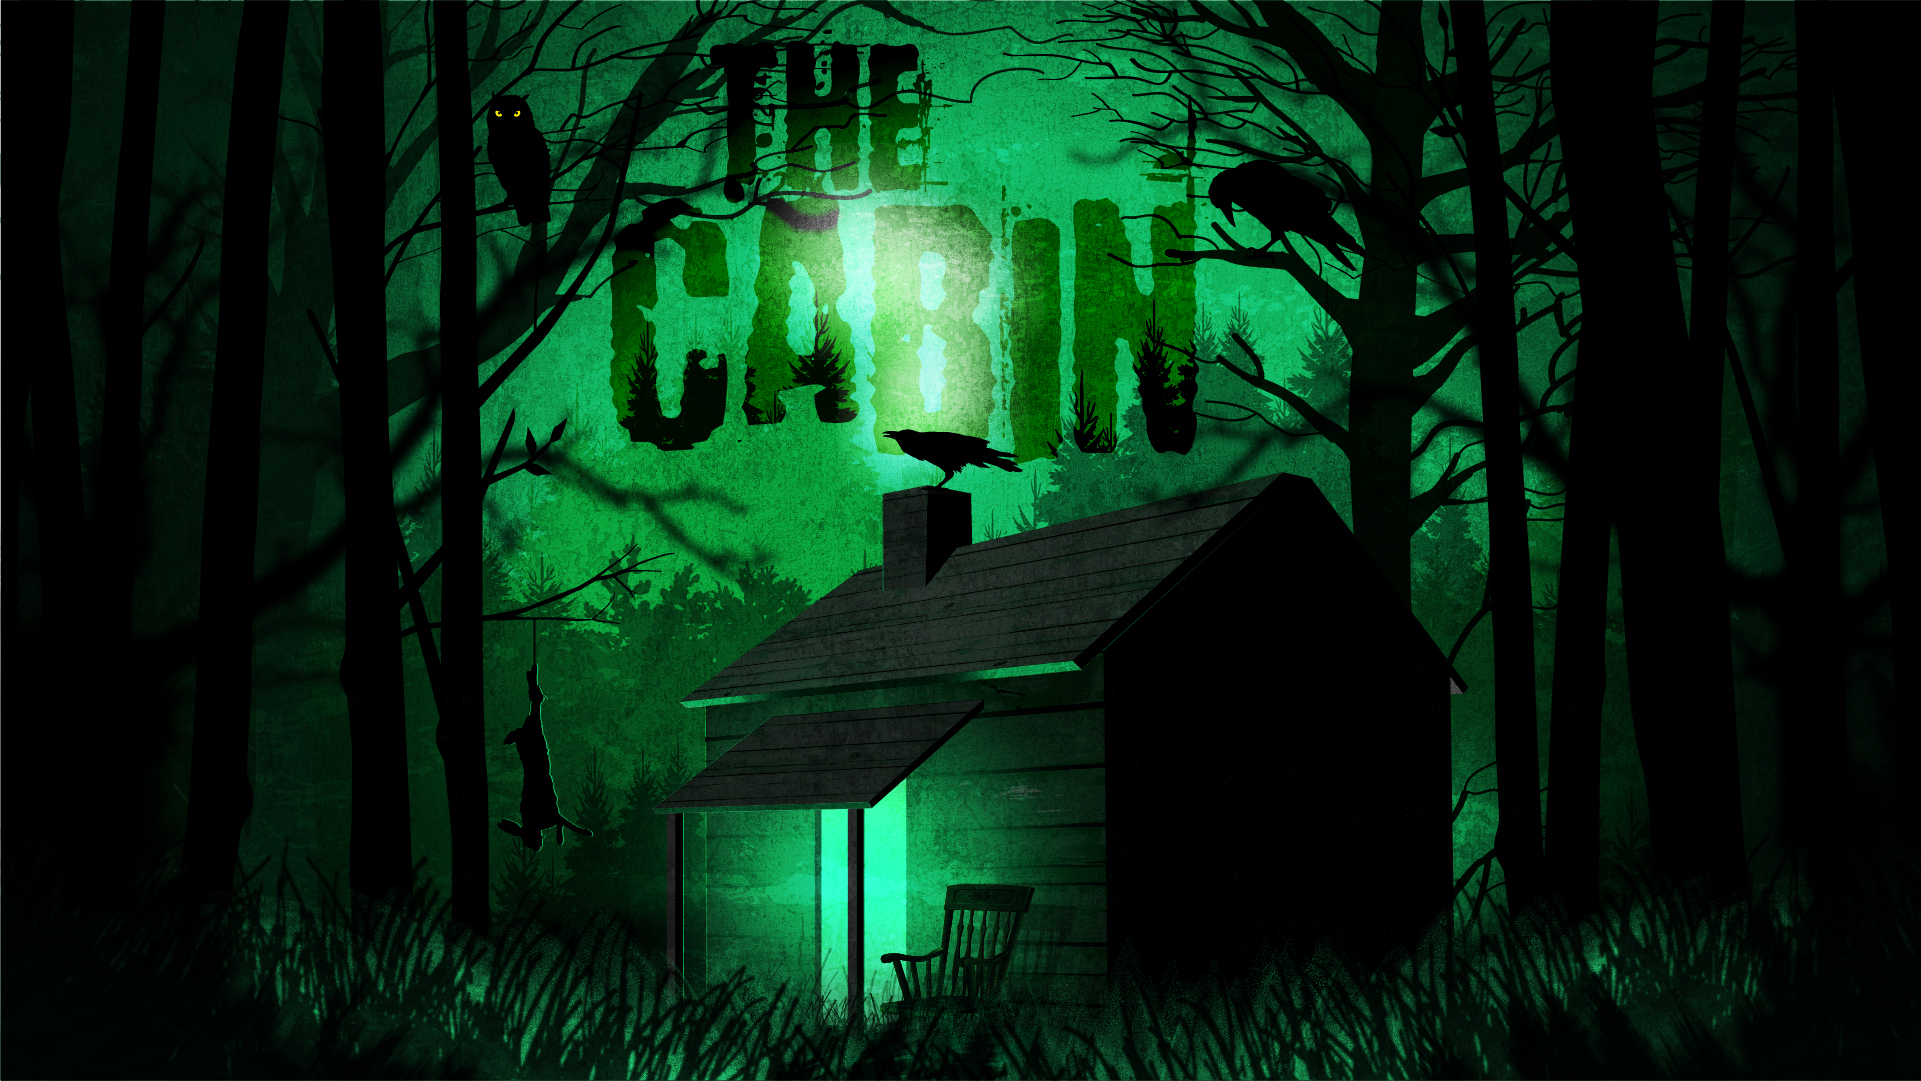 THE CABIN - If you go down to the woods today you are in for a big surprise...You're walking in the woods. There's no one around and your phone is dead. Out of the corner of your eye you spot it: The Cabin…If only you could get that radio working, you would be able to call for help, But the cabin may not be as safe as it first appears…